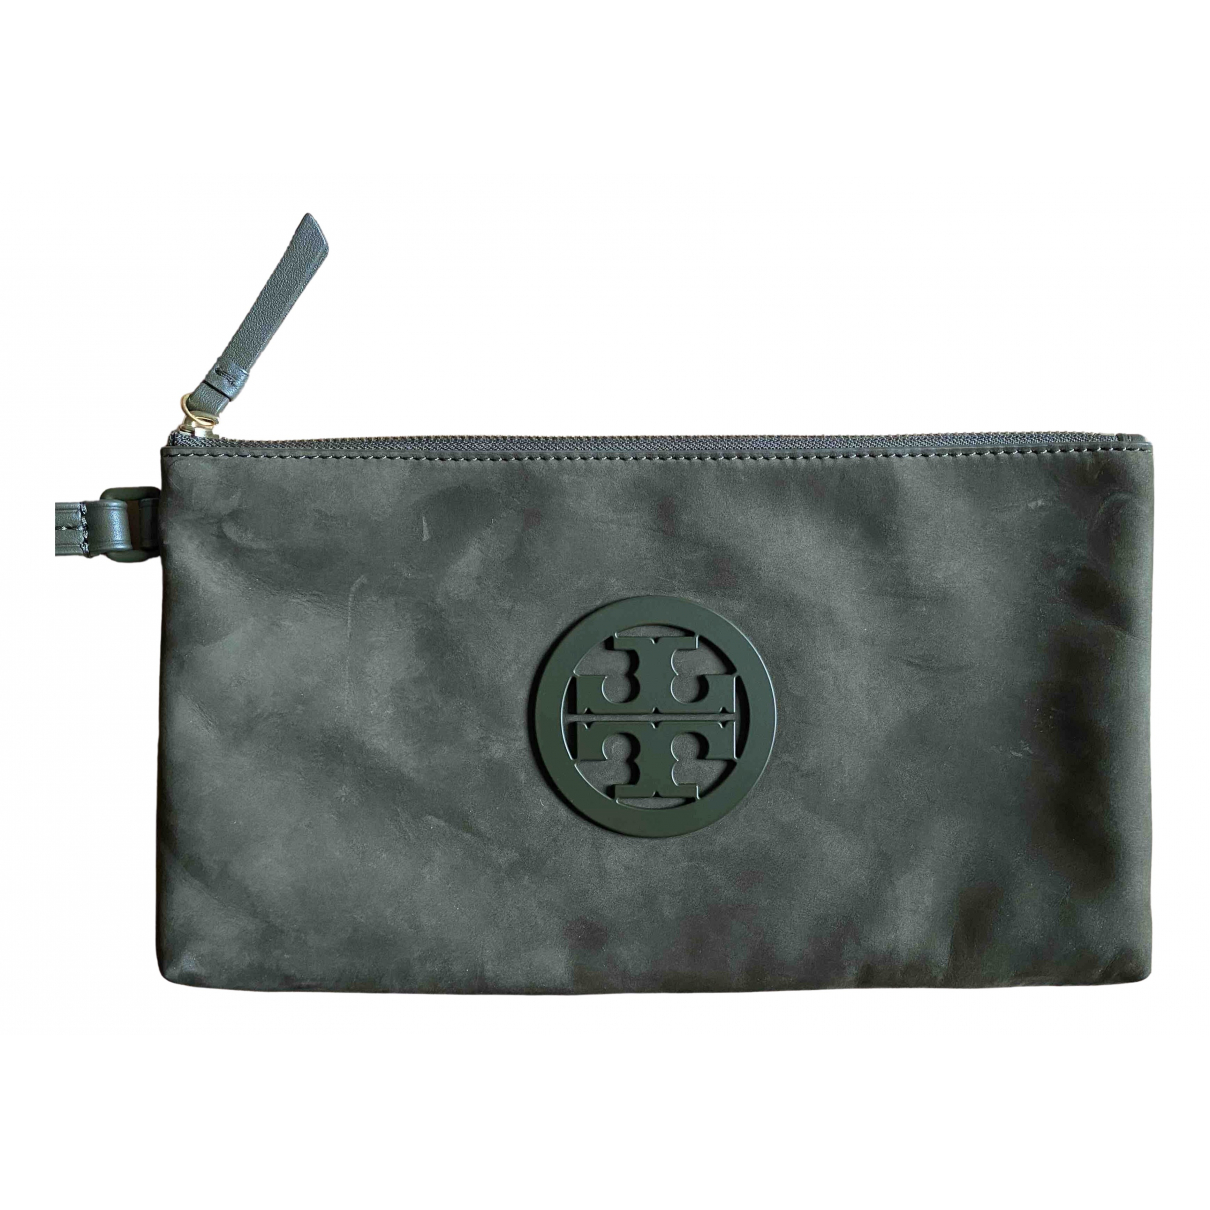 Tory Burch \N Khaki Leather Clutch bag for Women \N